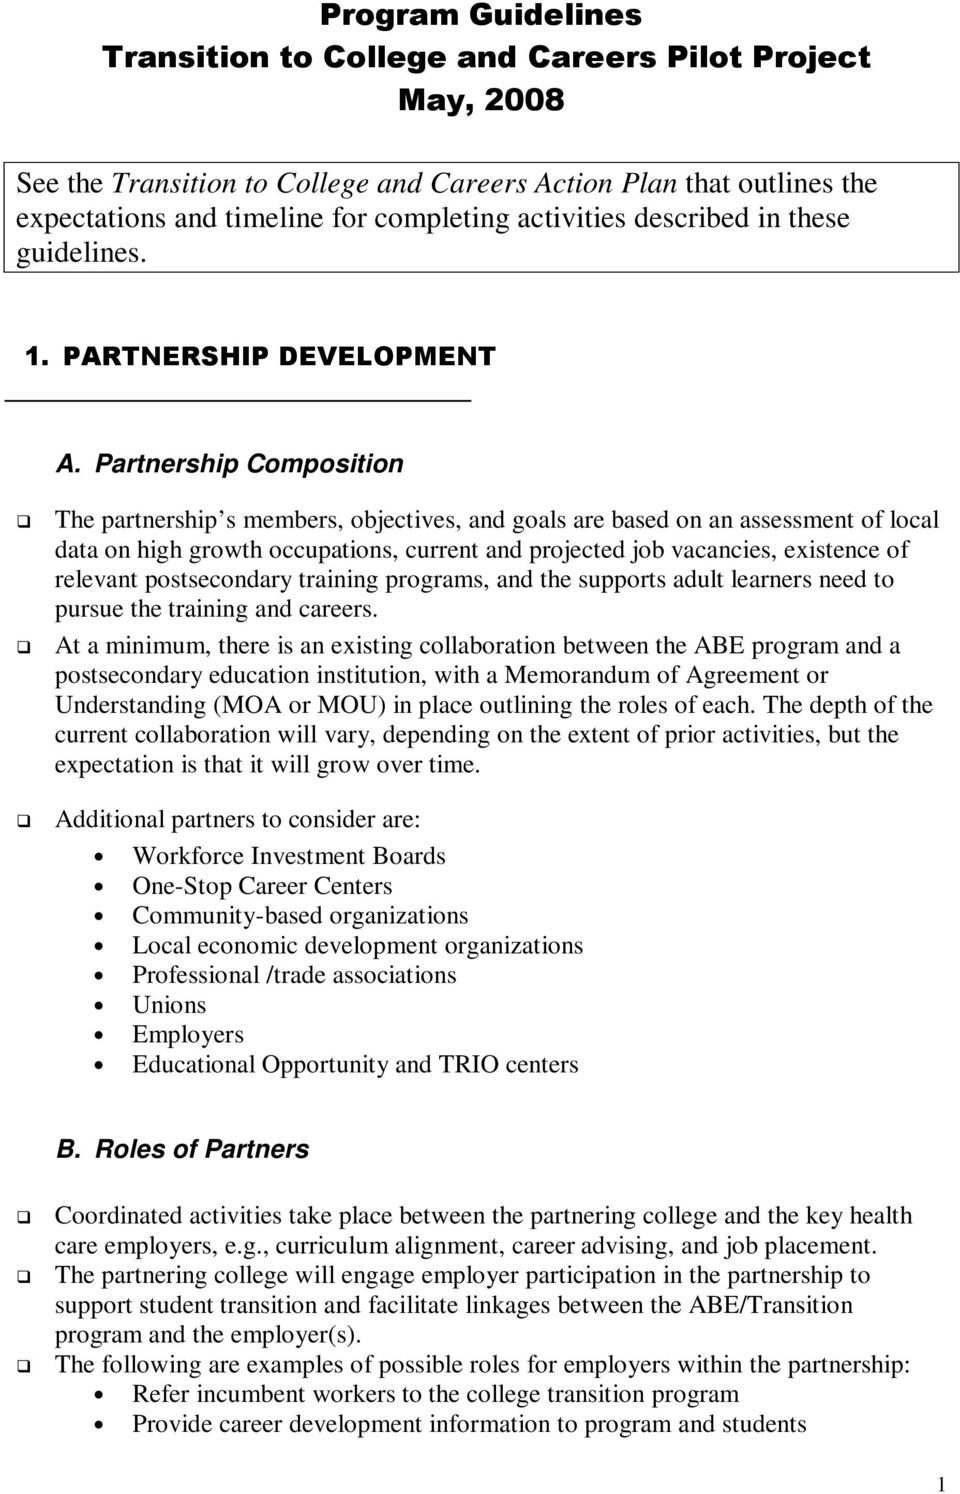 Partnership Composition The partnership s members, objectives, and goals are based on an assessment of local data on high growth occupations, current and projected job vacancies, existence of